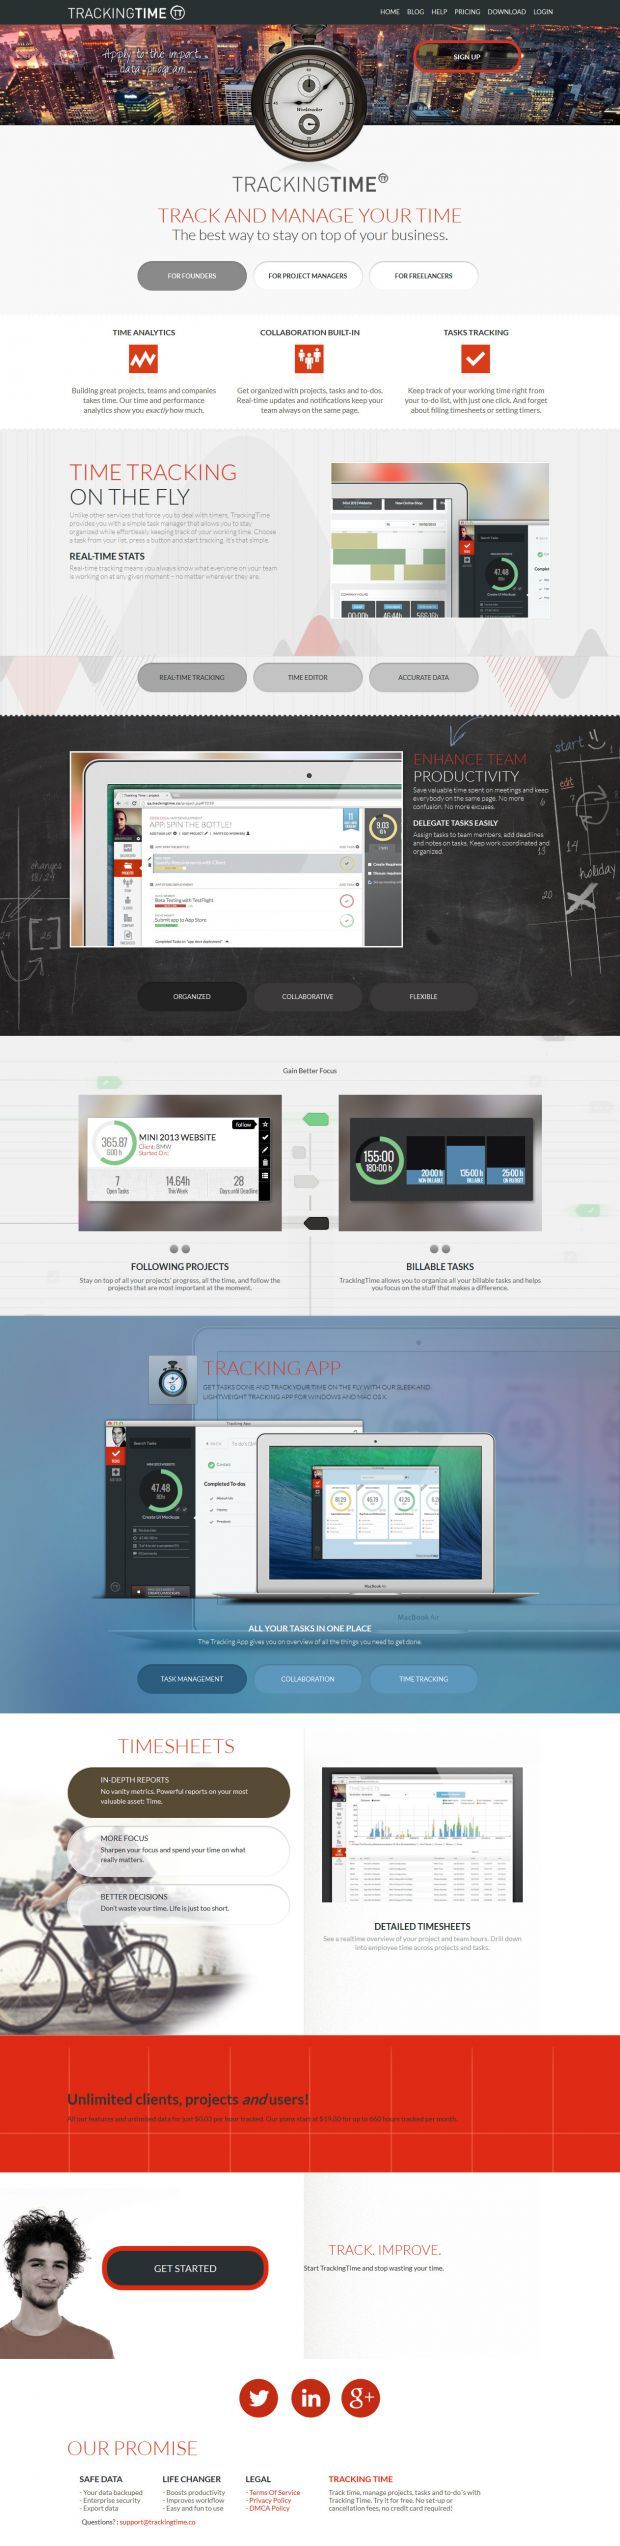 Time Tracking Software - Tracking Time - Webdesign inspiration